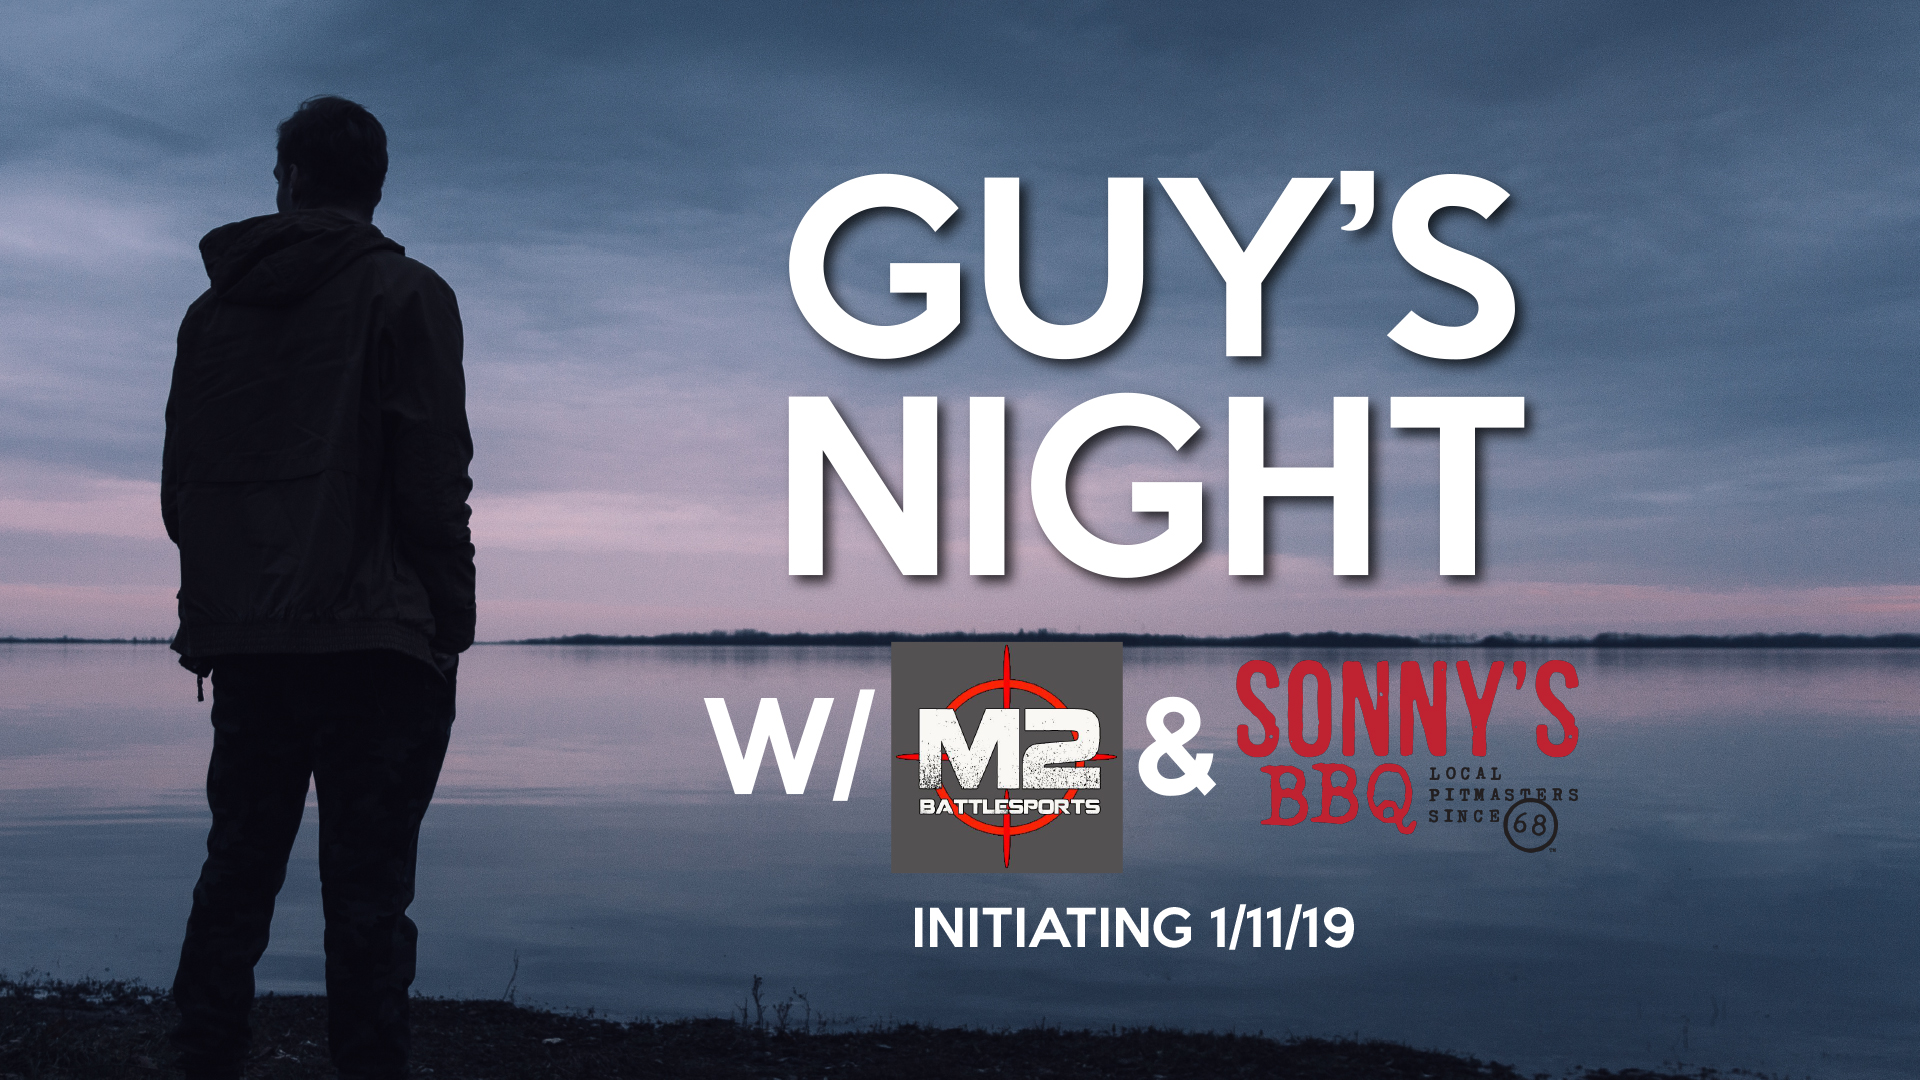 Guy's Night Out on 1/11/19